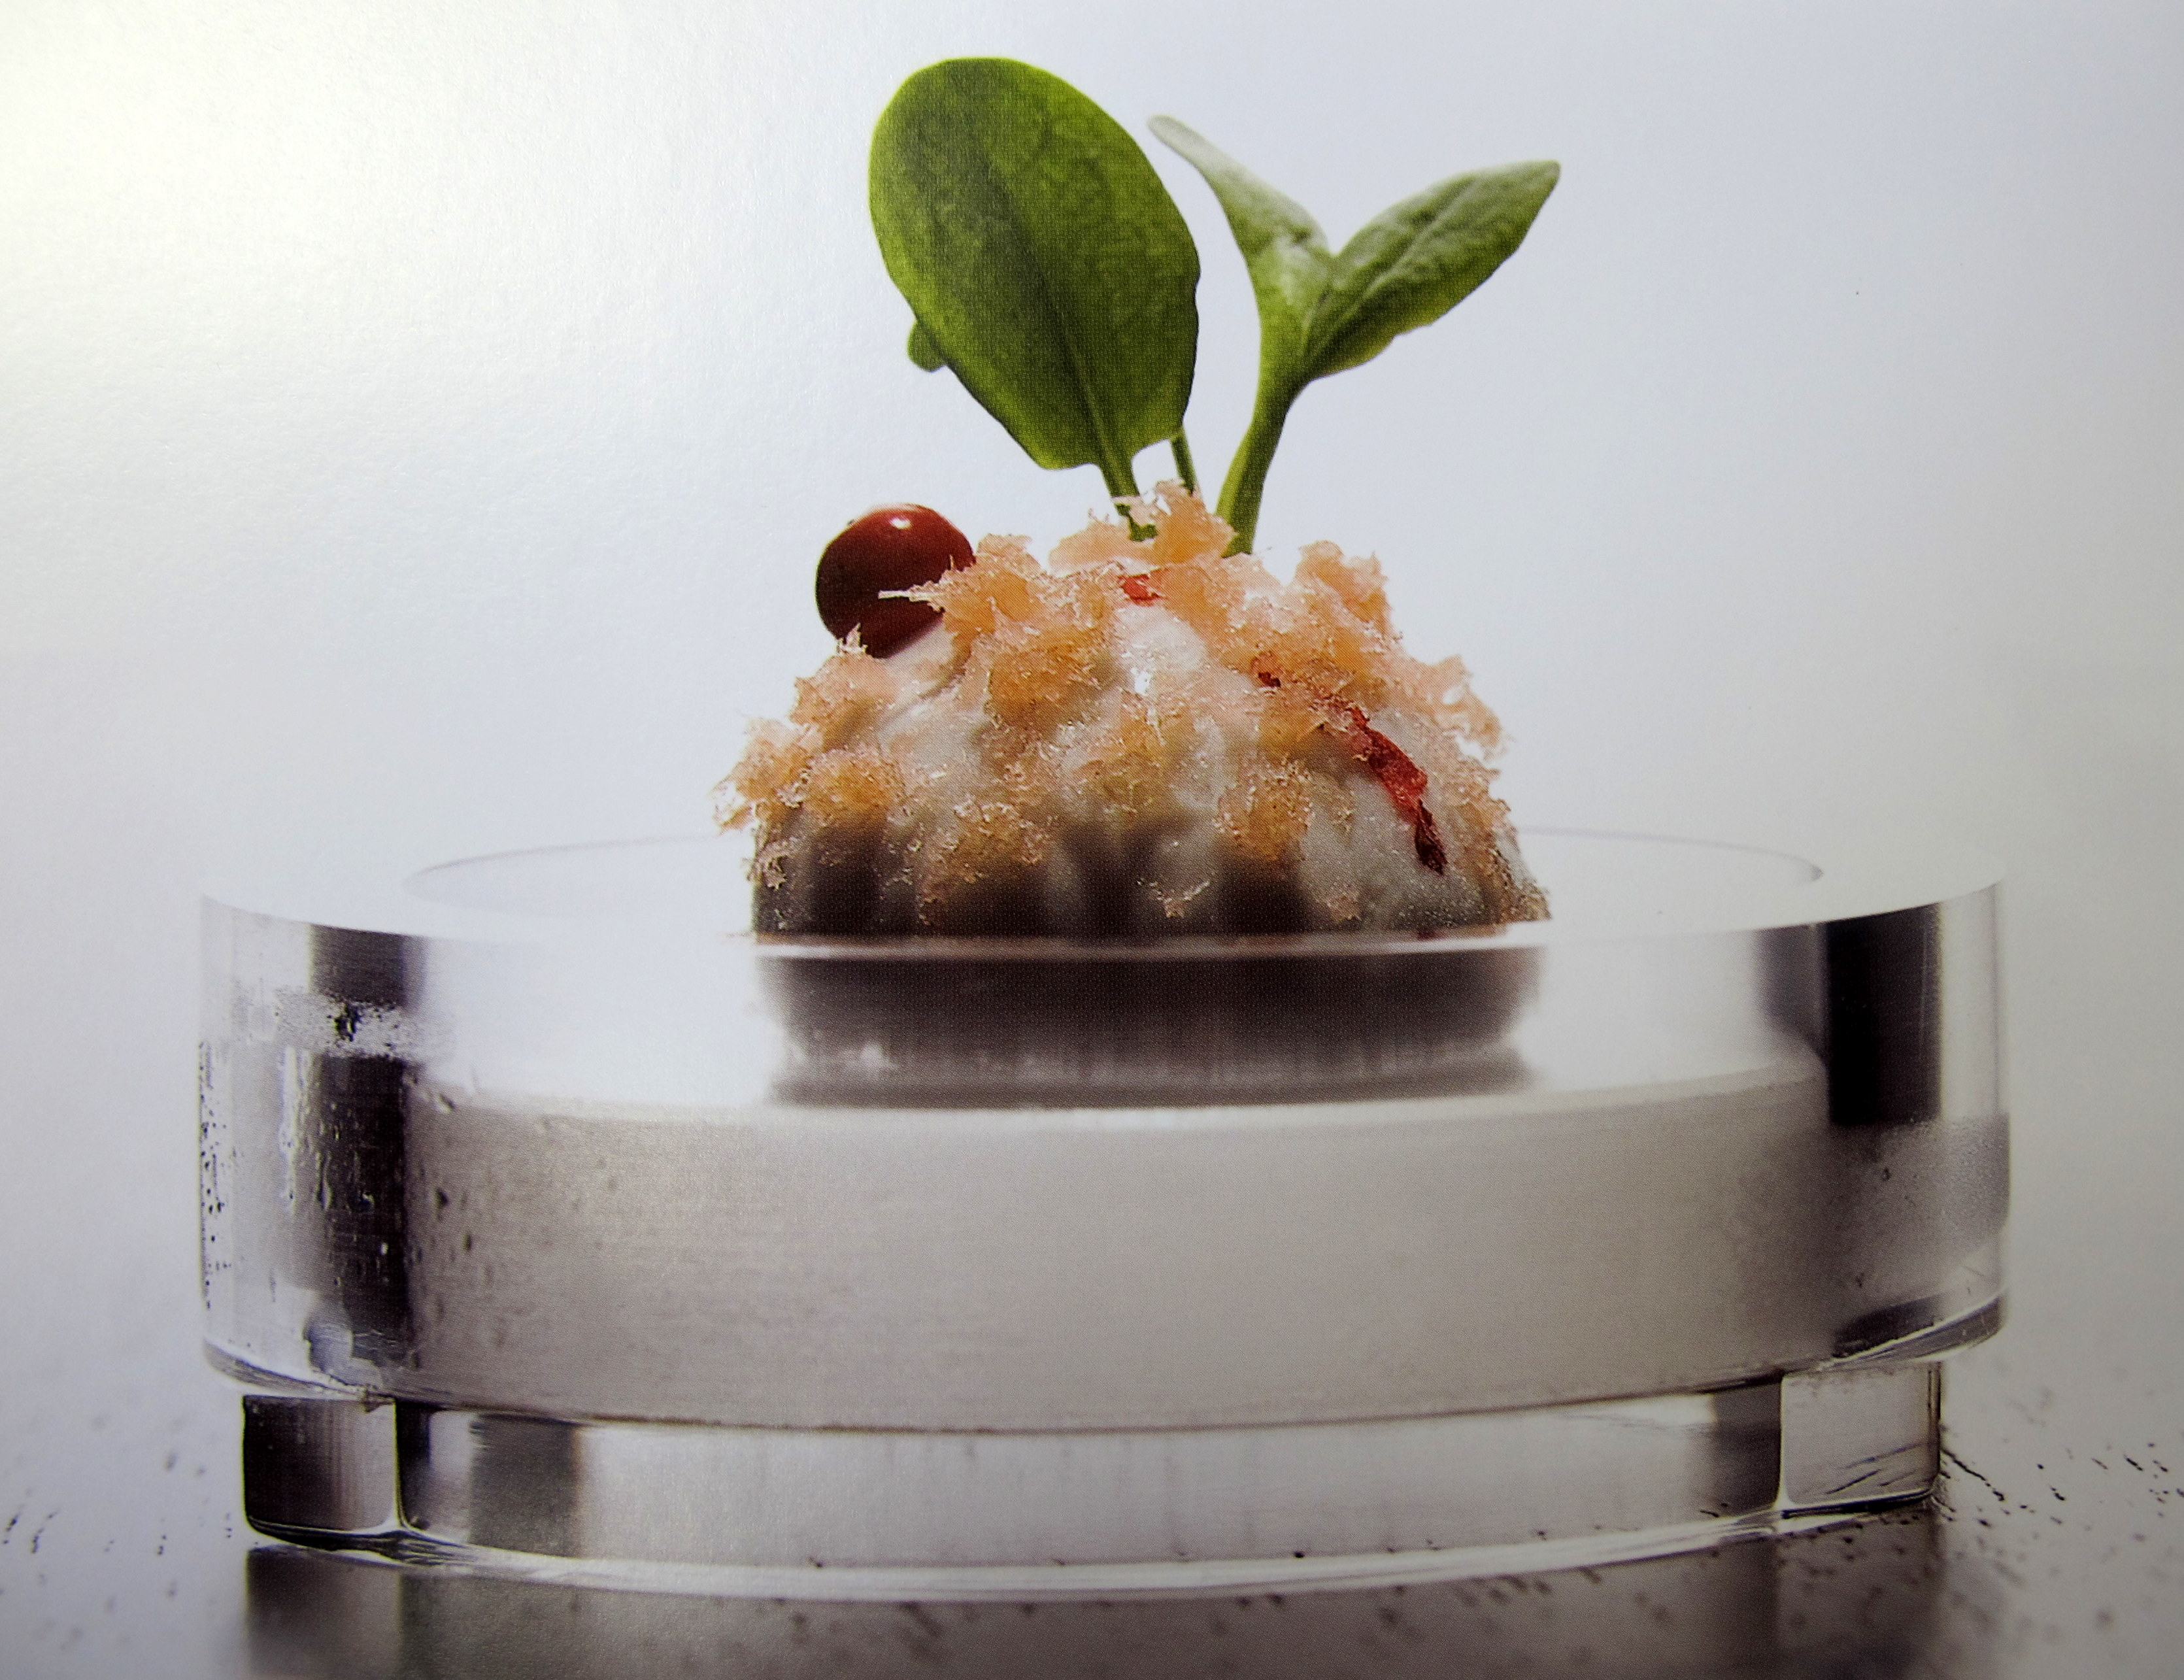 alinea, unlike any other restaurant   gayot's blog